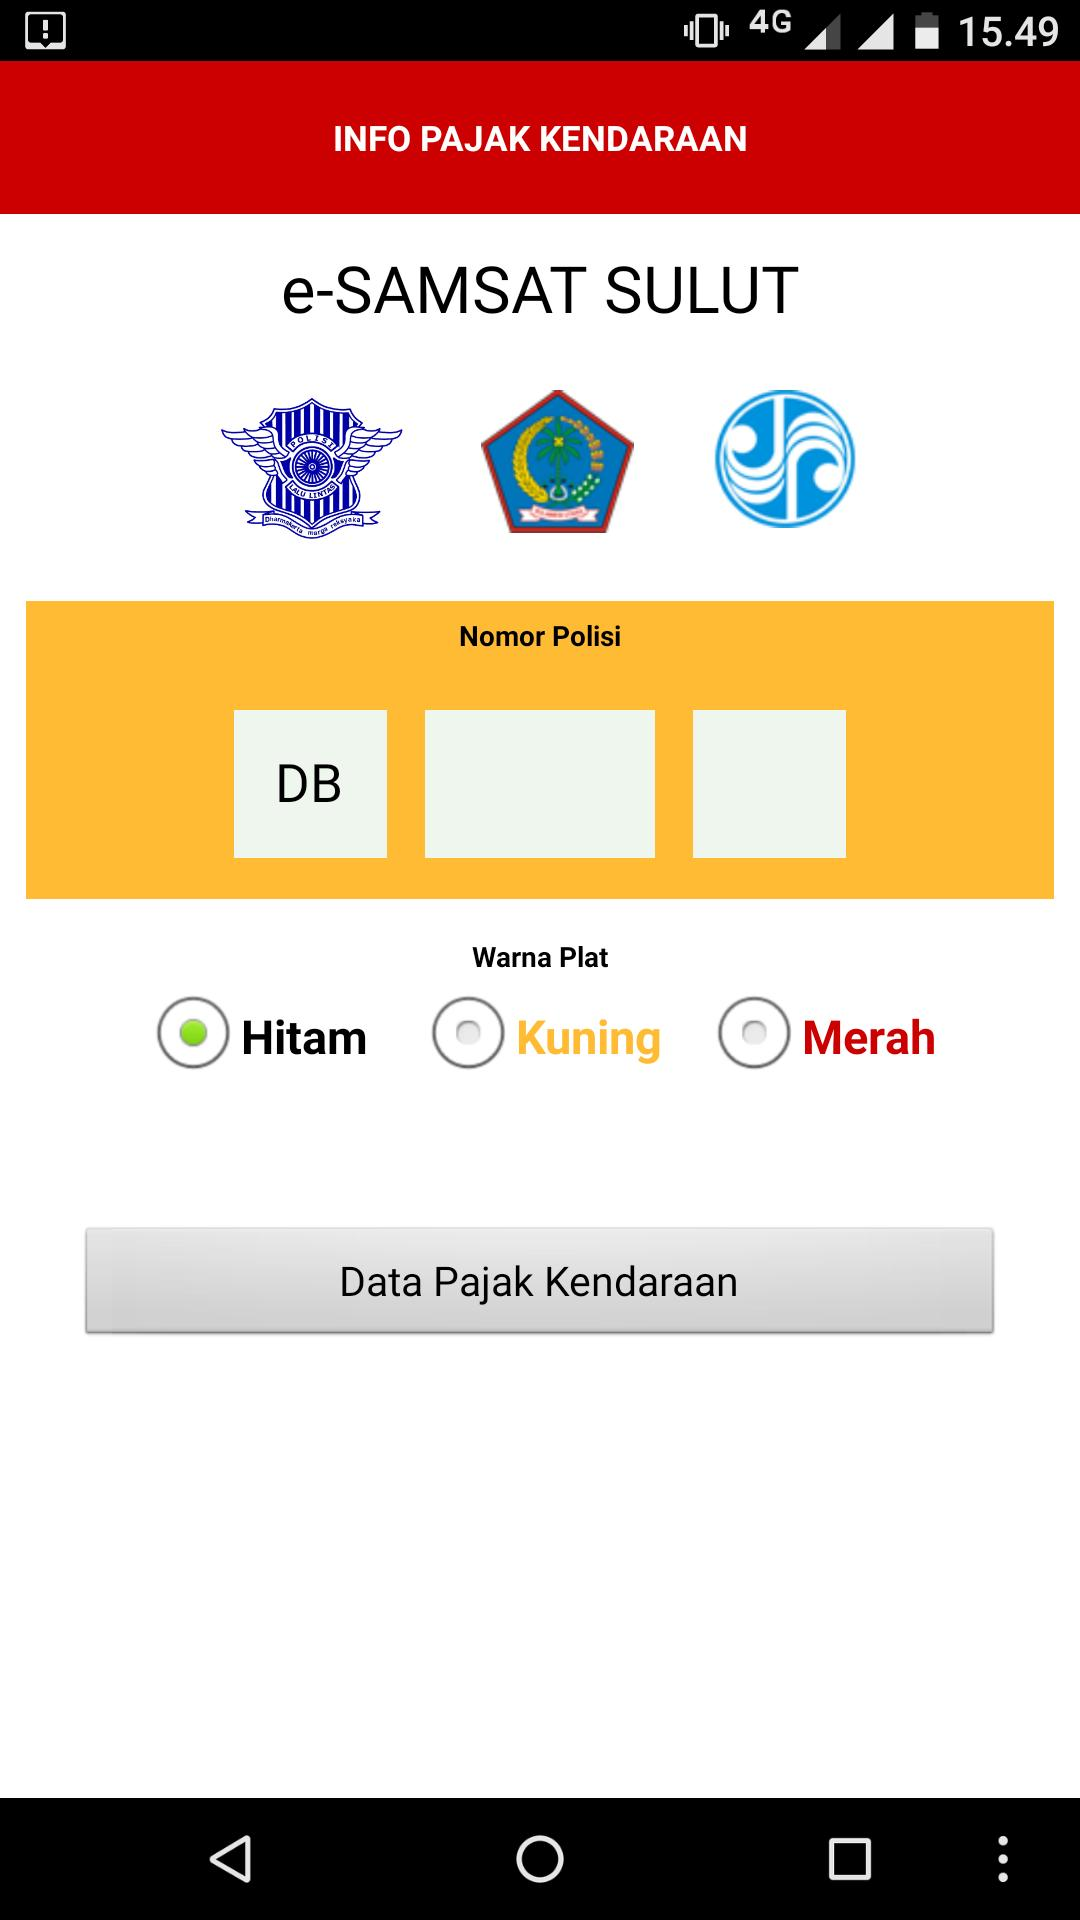 Info Pajak Kendaraan Sulut For Android Apk Download